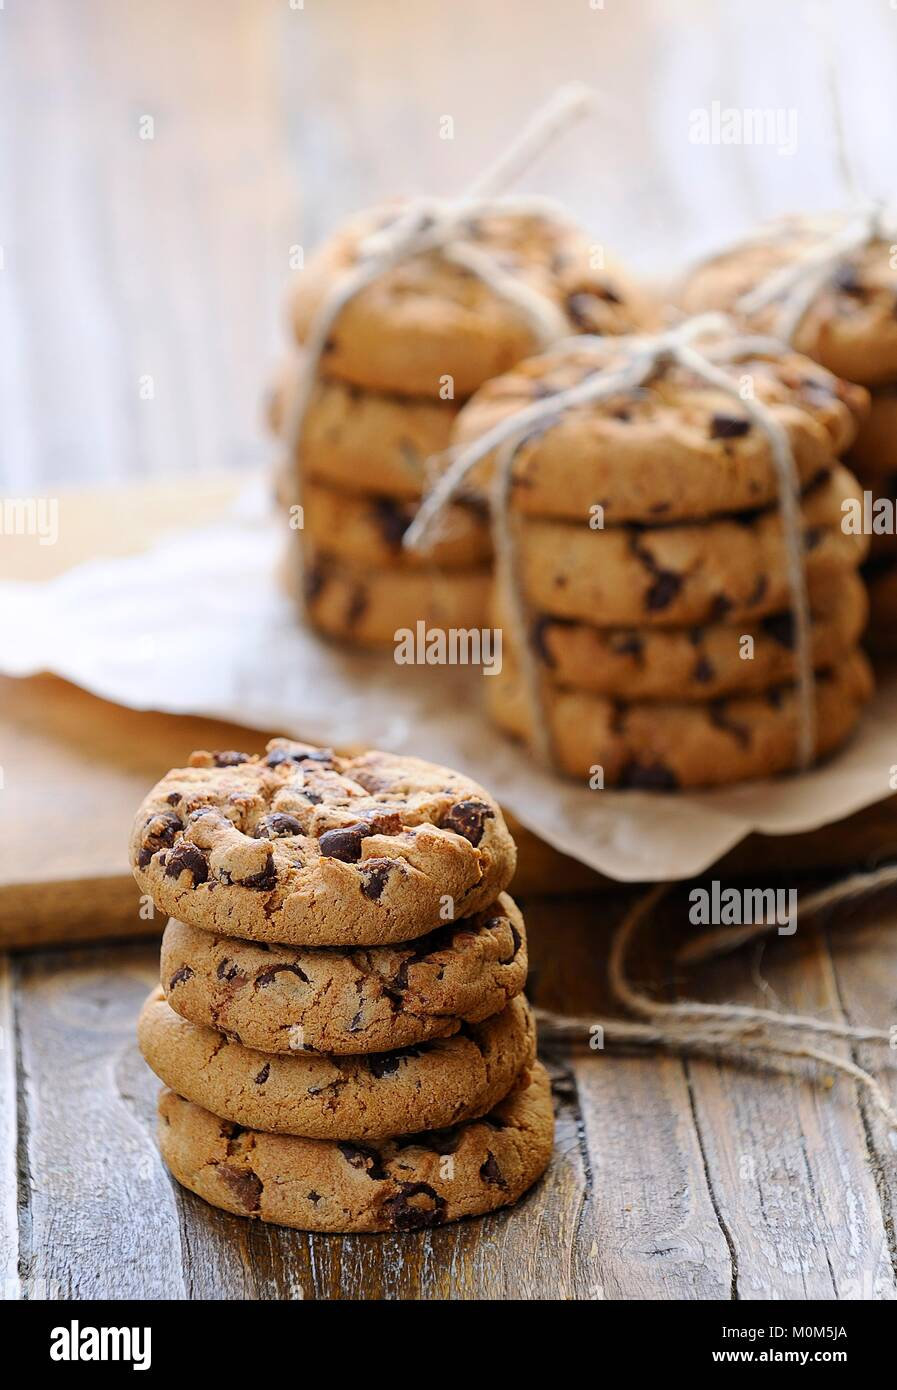 Close-up of several piles of chocolate cookies on wooden table. - Stock Image